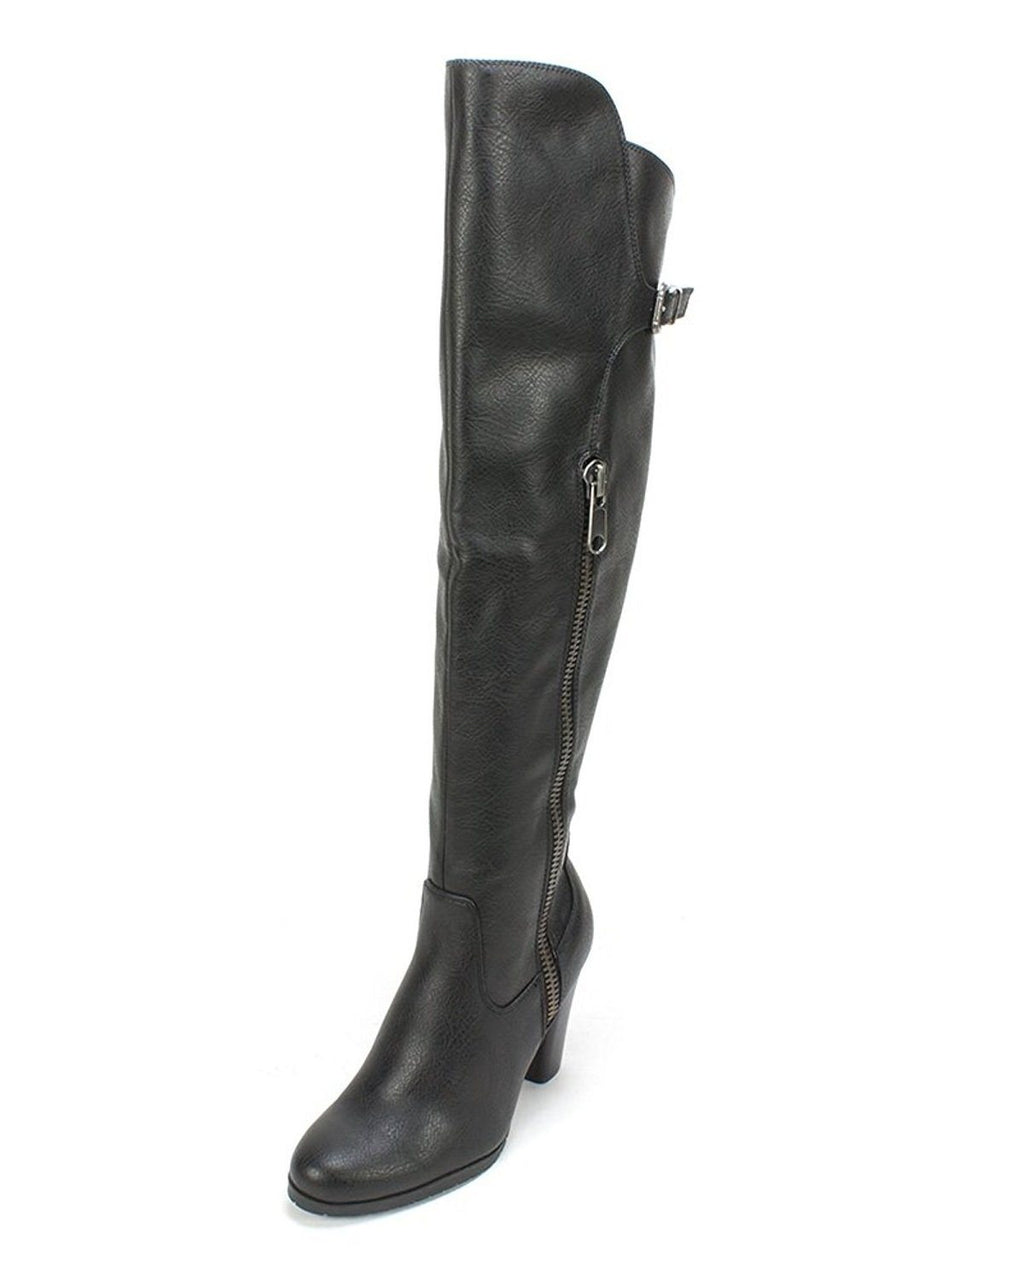 Rialto Women's VIOLET Closed Toe Knee High Fashion Boots